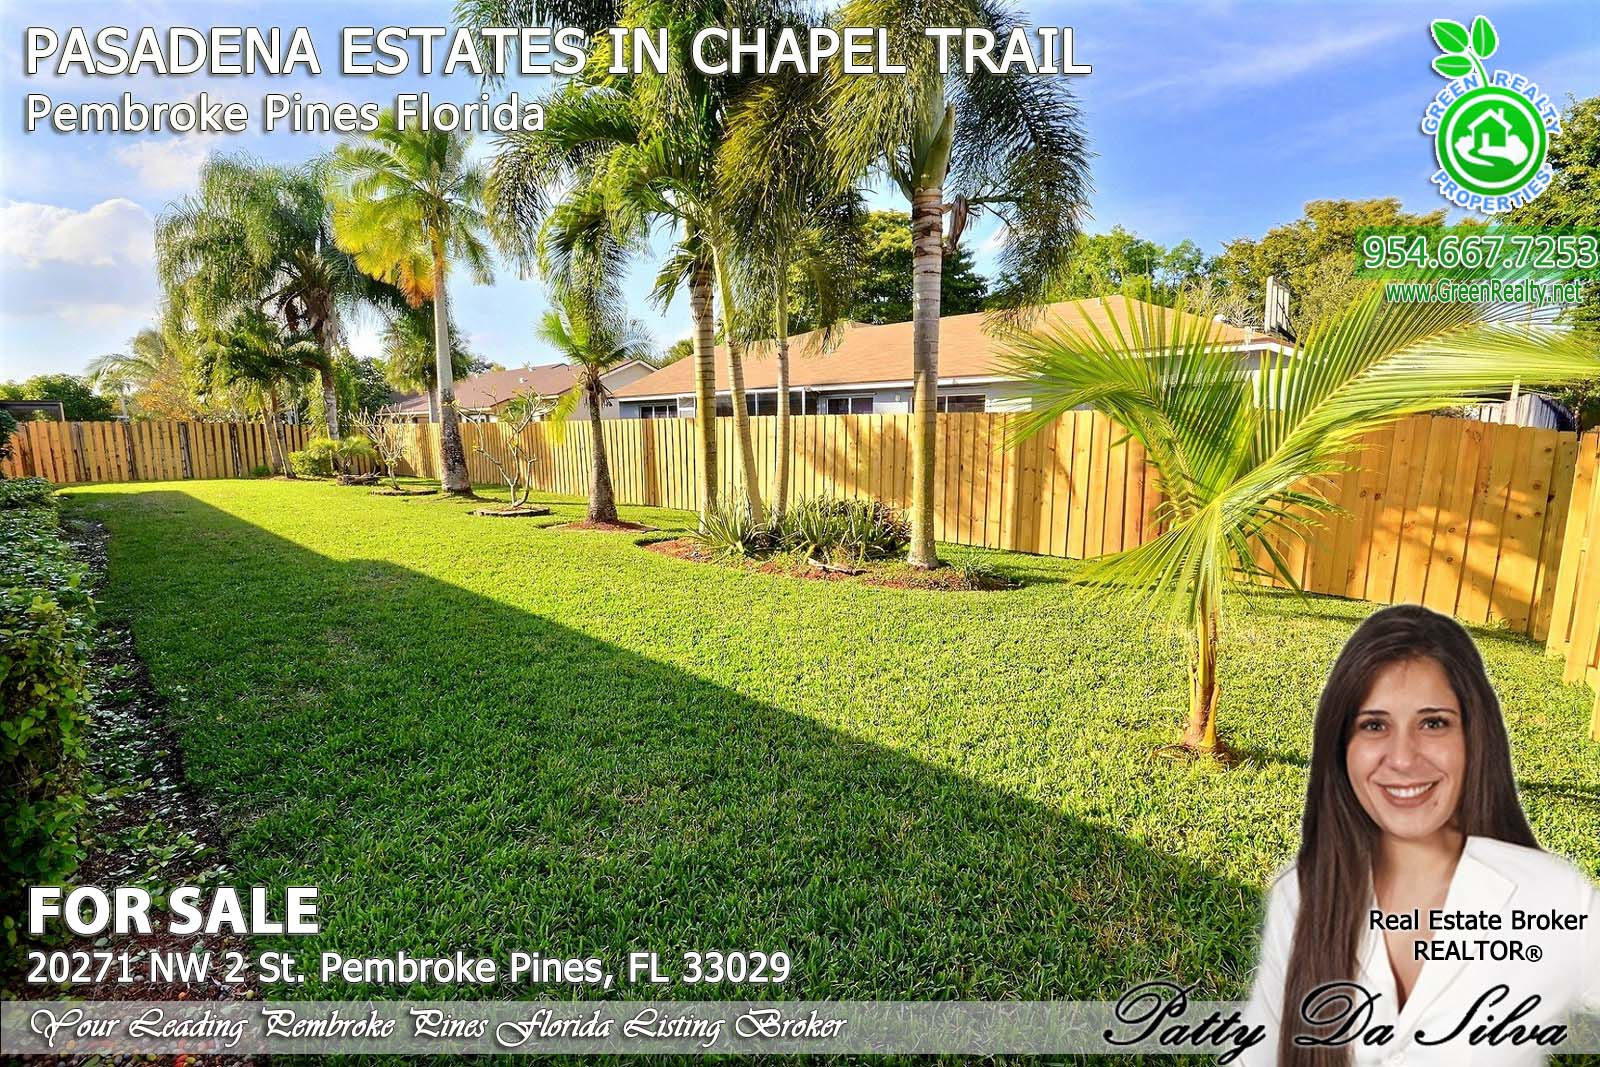 Pasadena Estates of Chapel Trail - Pembroke Pines FL realtor